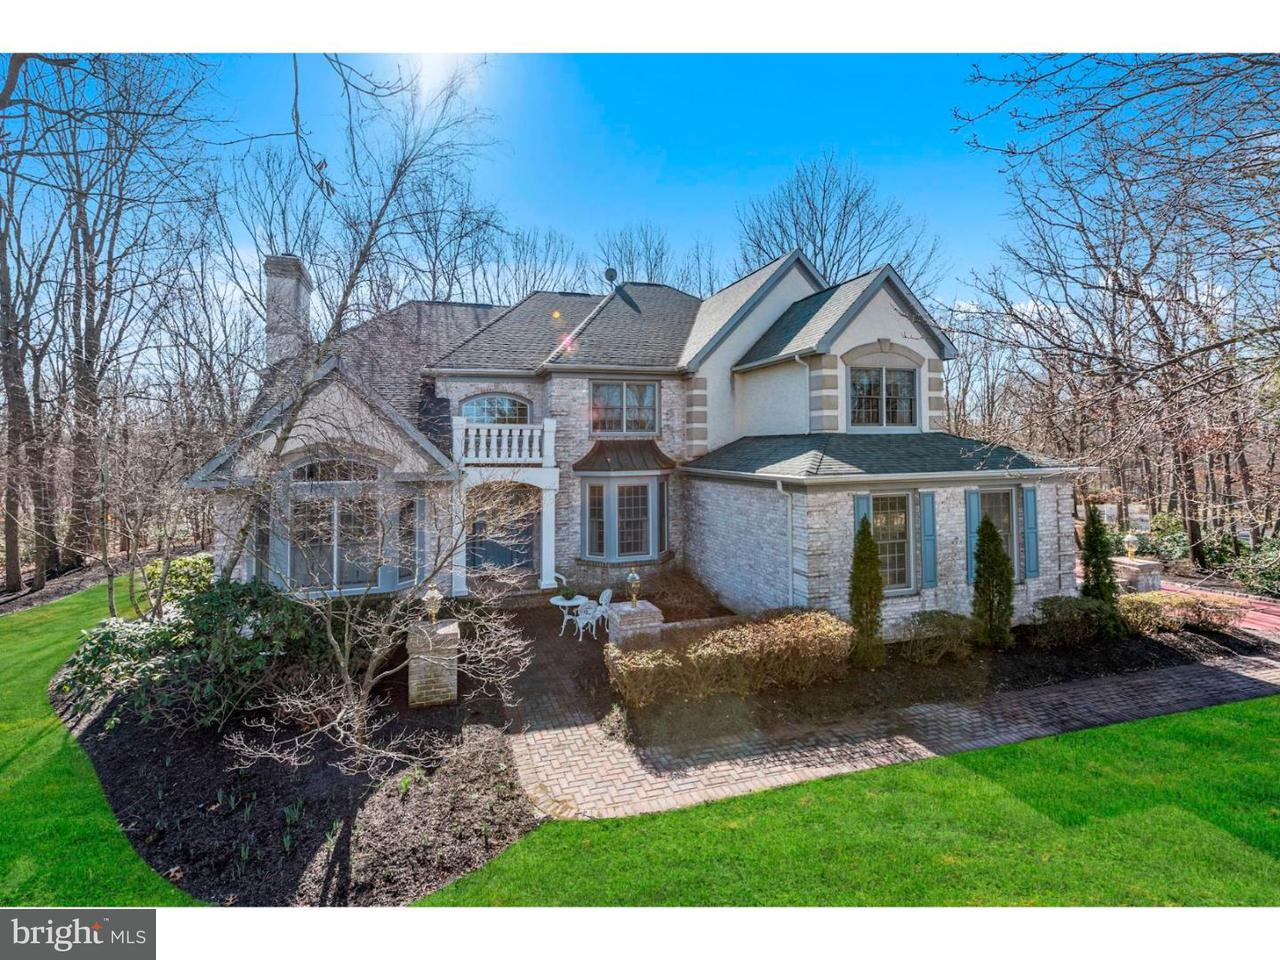 Single Family Home for Sale at 200 S UNITED STATES Avenue Gibbsboro, New Jersey 08026 United States